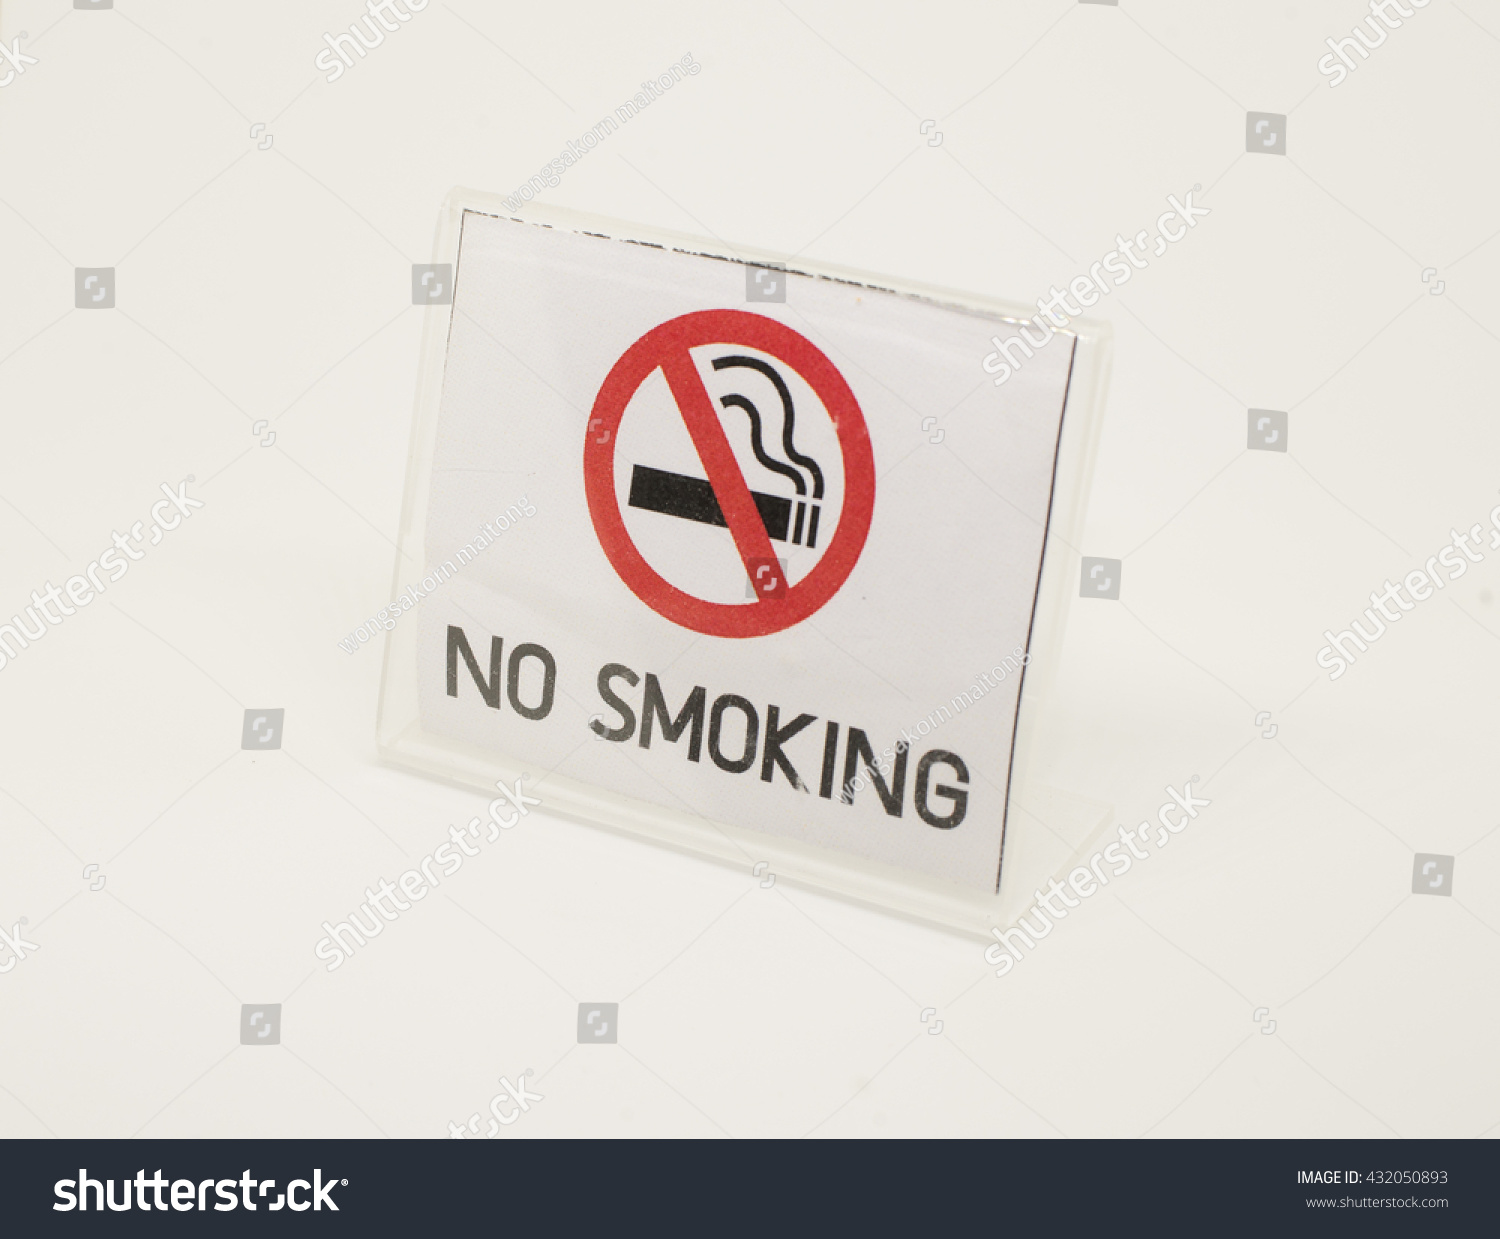 No smoking symbol white background stock photo 432050893 shutterstock no smoking symbol in white background buycottarizona Images